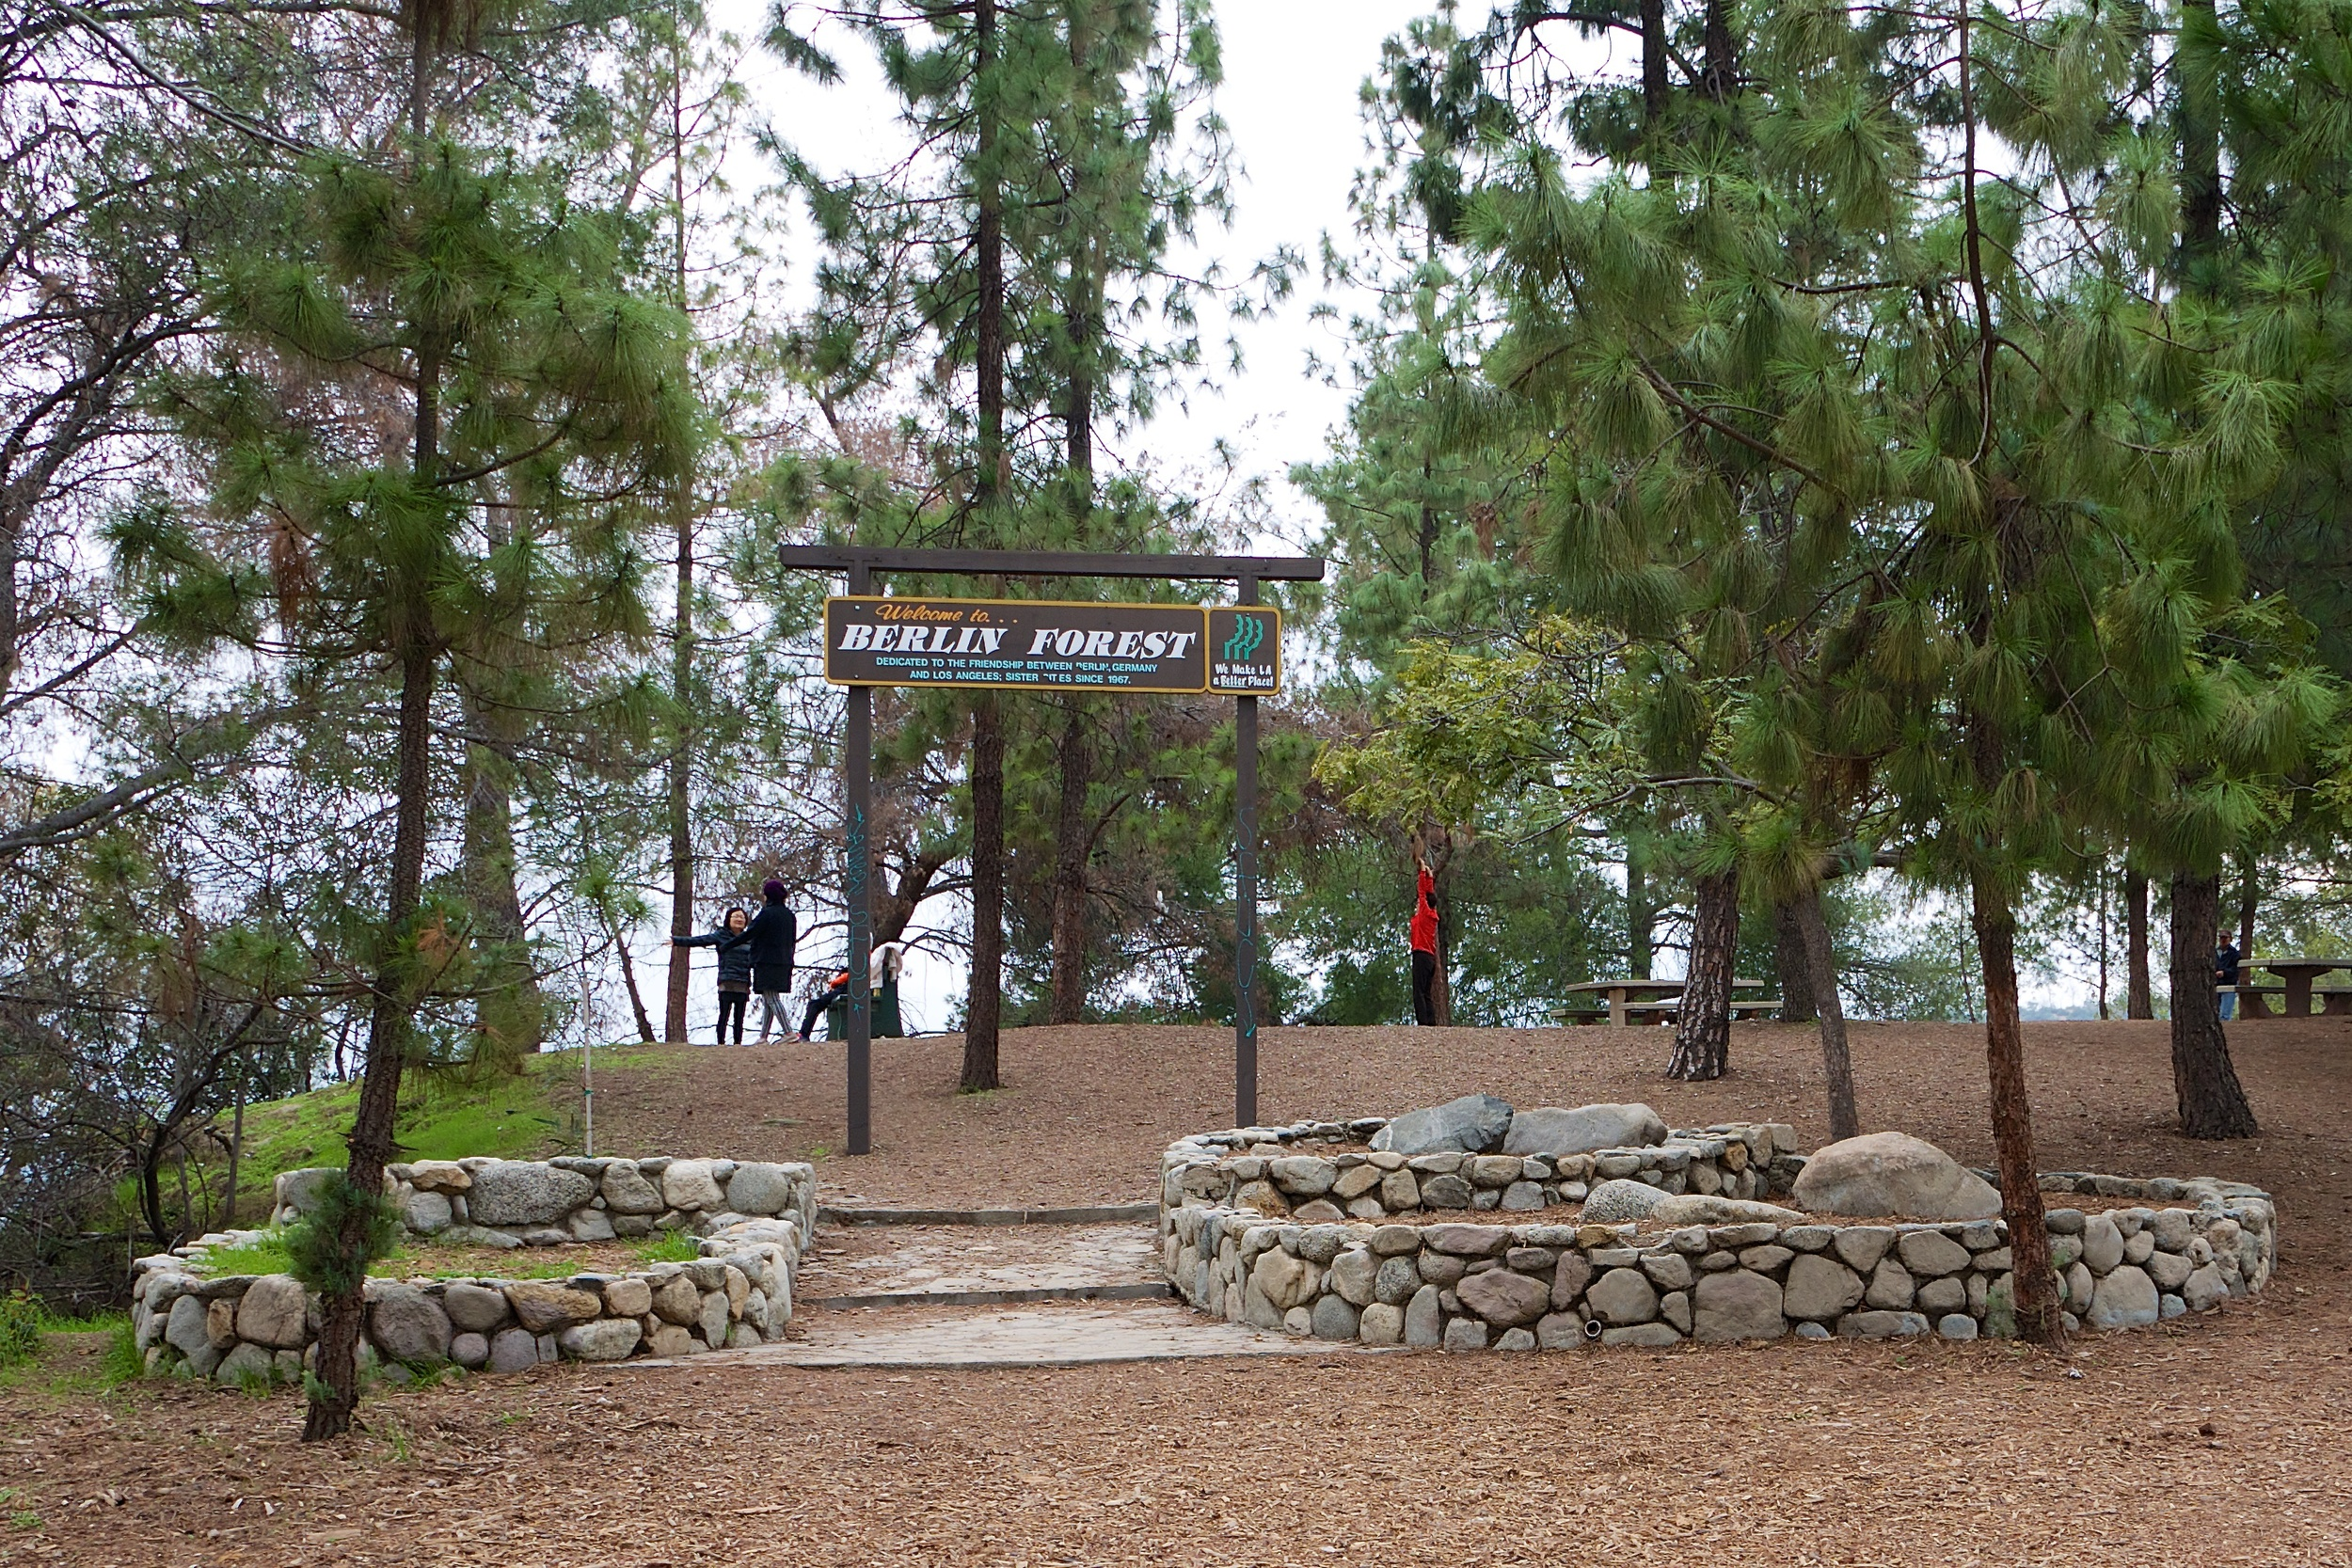 Berlin and Los Angeles are sister cities, which is why this small grove of trees is dedicated to the city